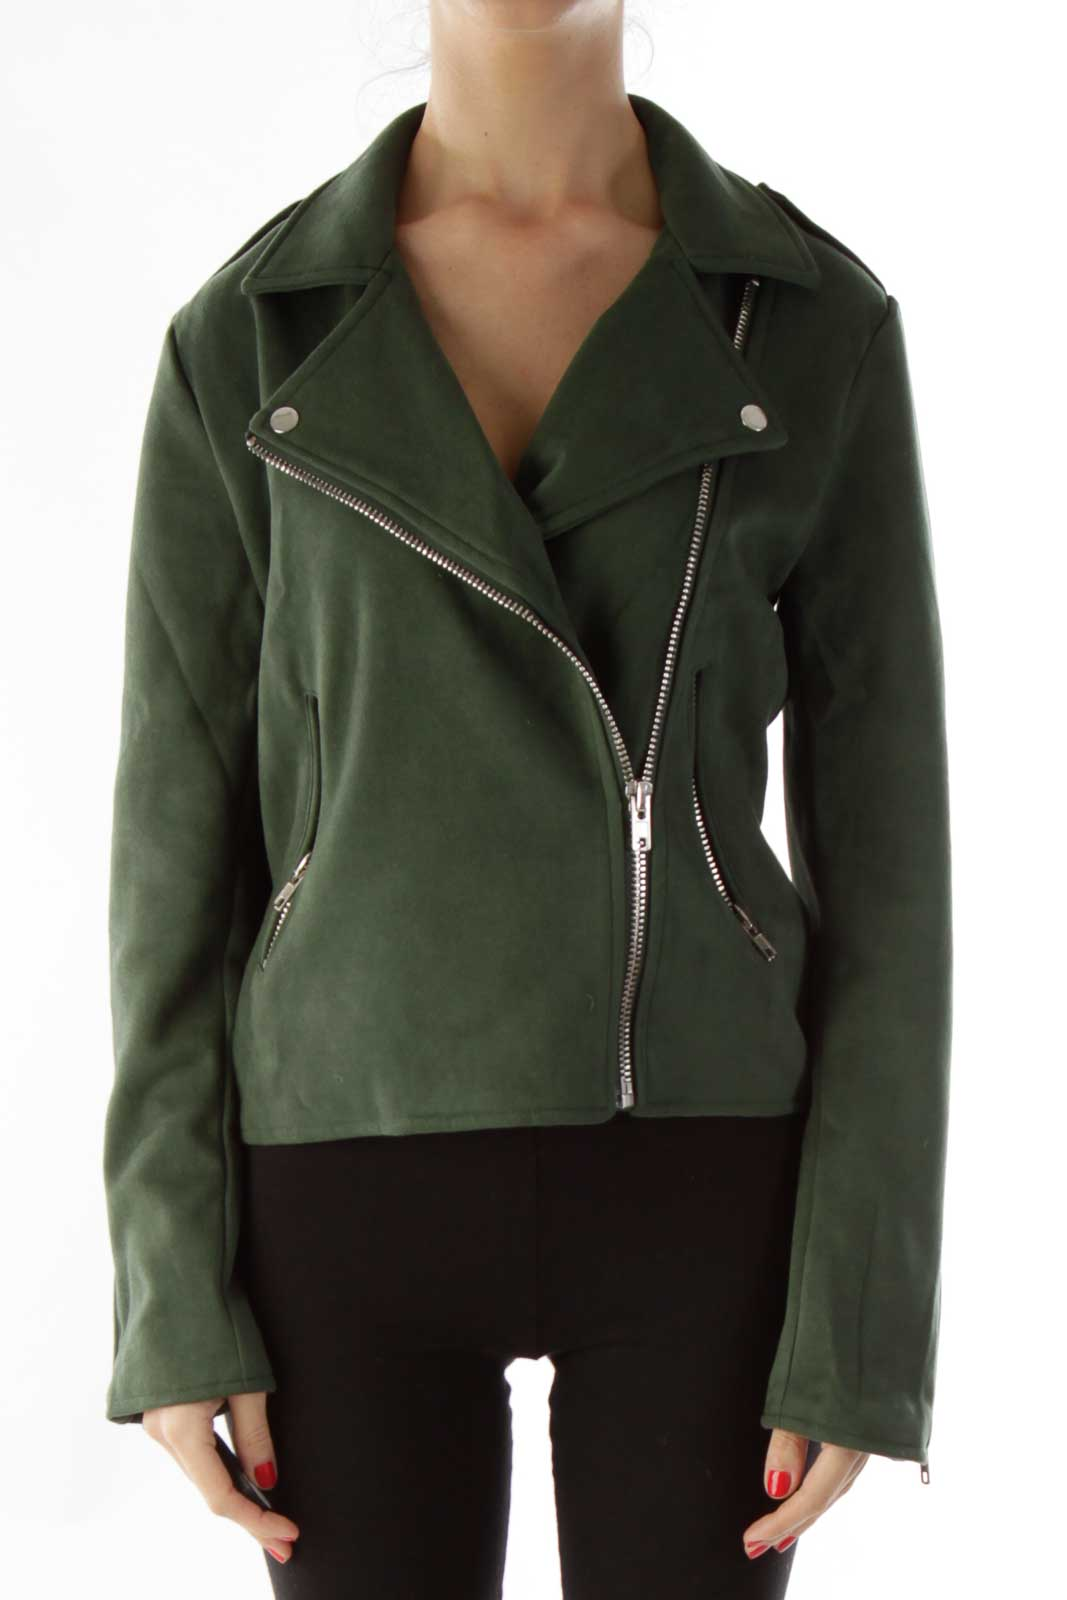 Green Silver Swede Zippered Jacket Front